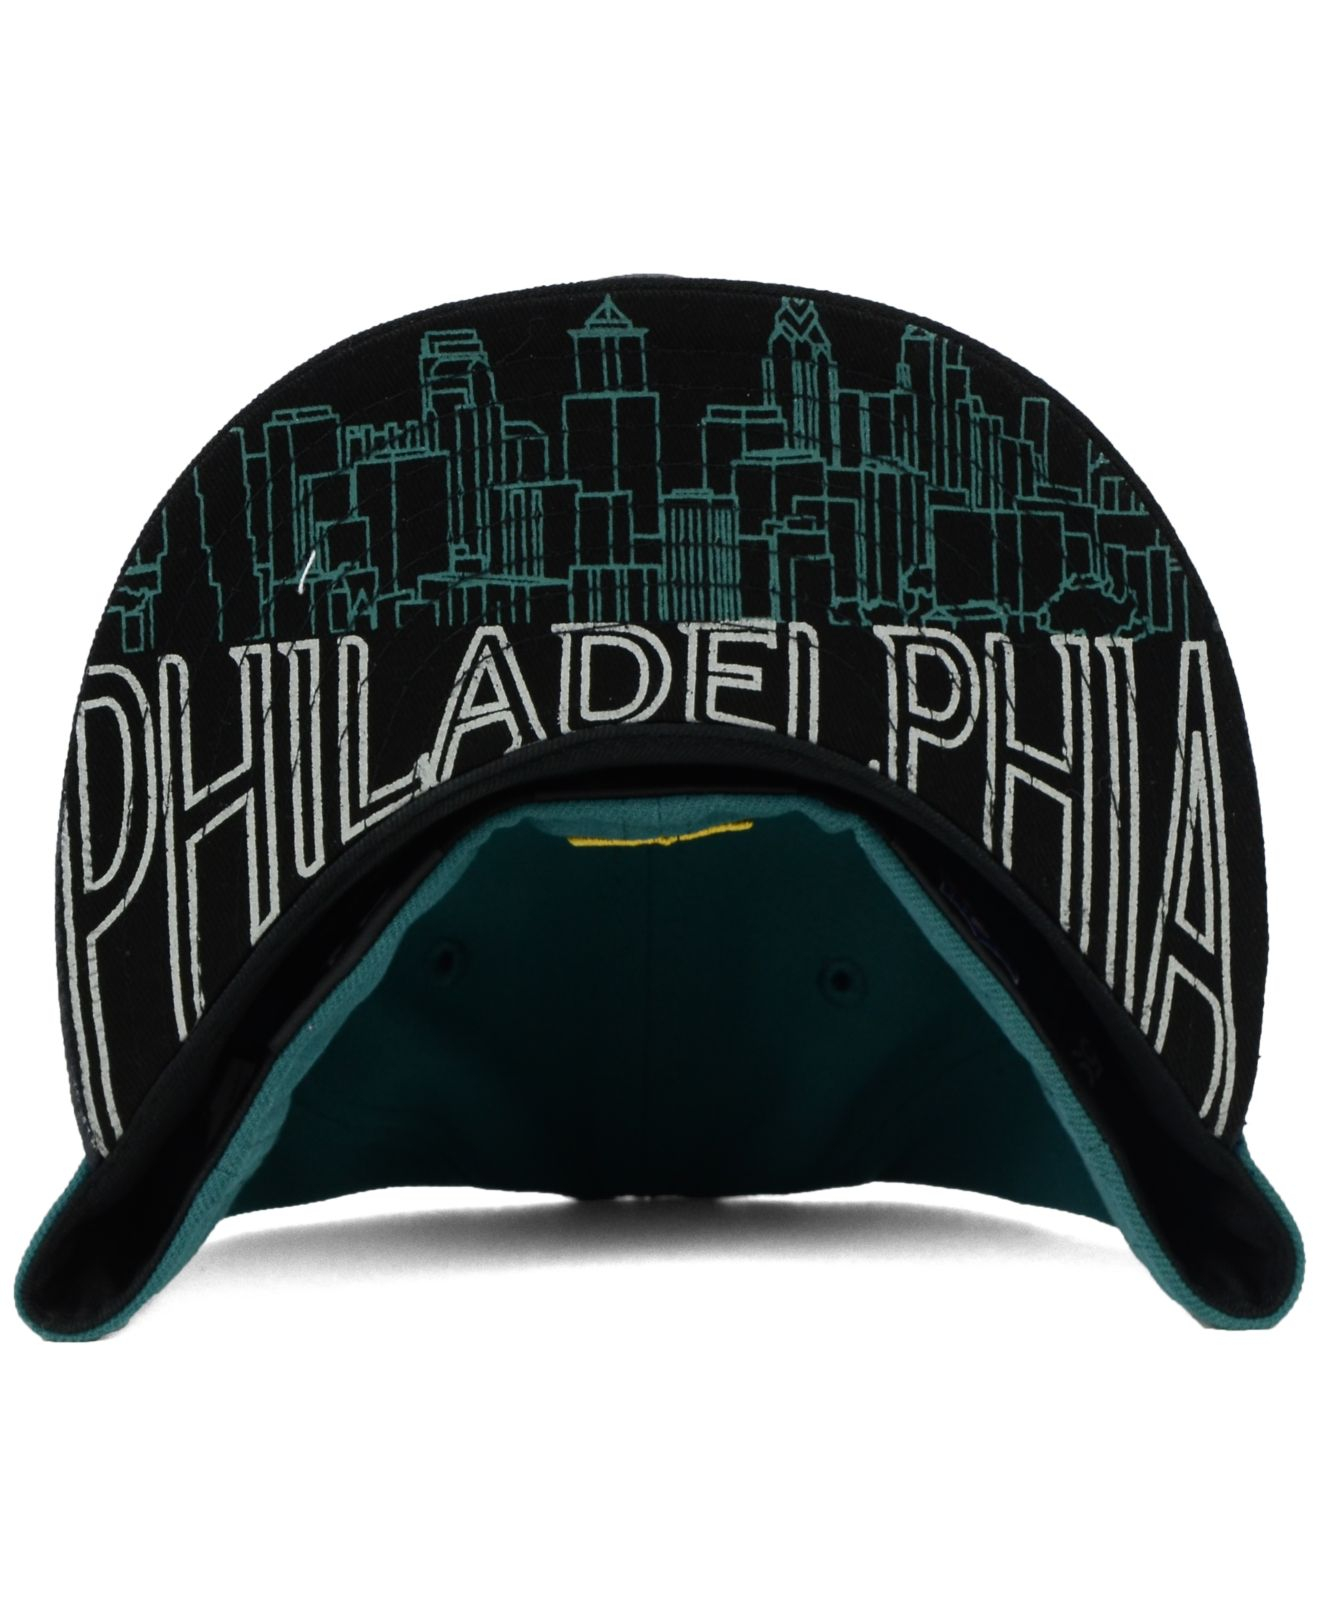 201bcb9a KTZ Kids' Philadelphia Eagles 2015 Nfl Draft 59fifty Cap in Green - Lyst